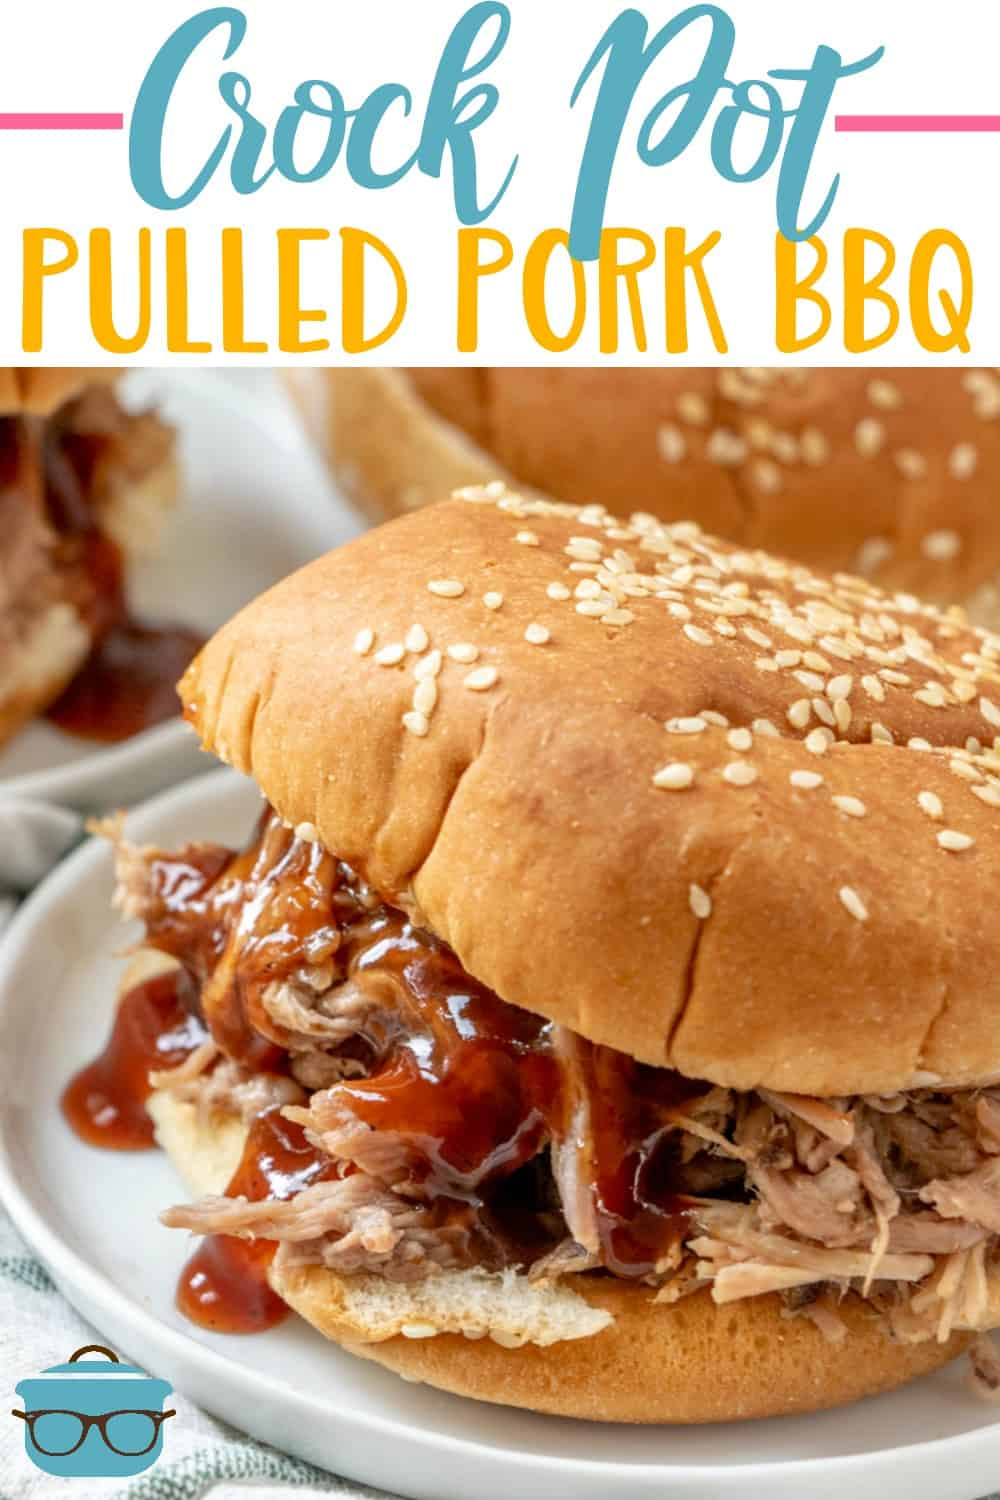 Crock Pot Pulled Pork BBQ recipe from The Country Cook. Closeup photo of pulled pork on a hamburger bun with barbecue sauce drizzled on top of the pork.